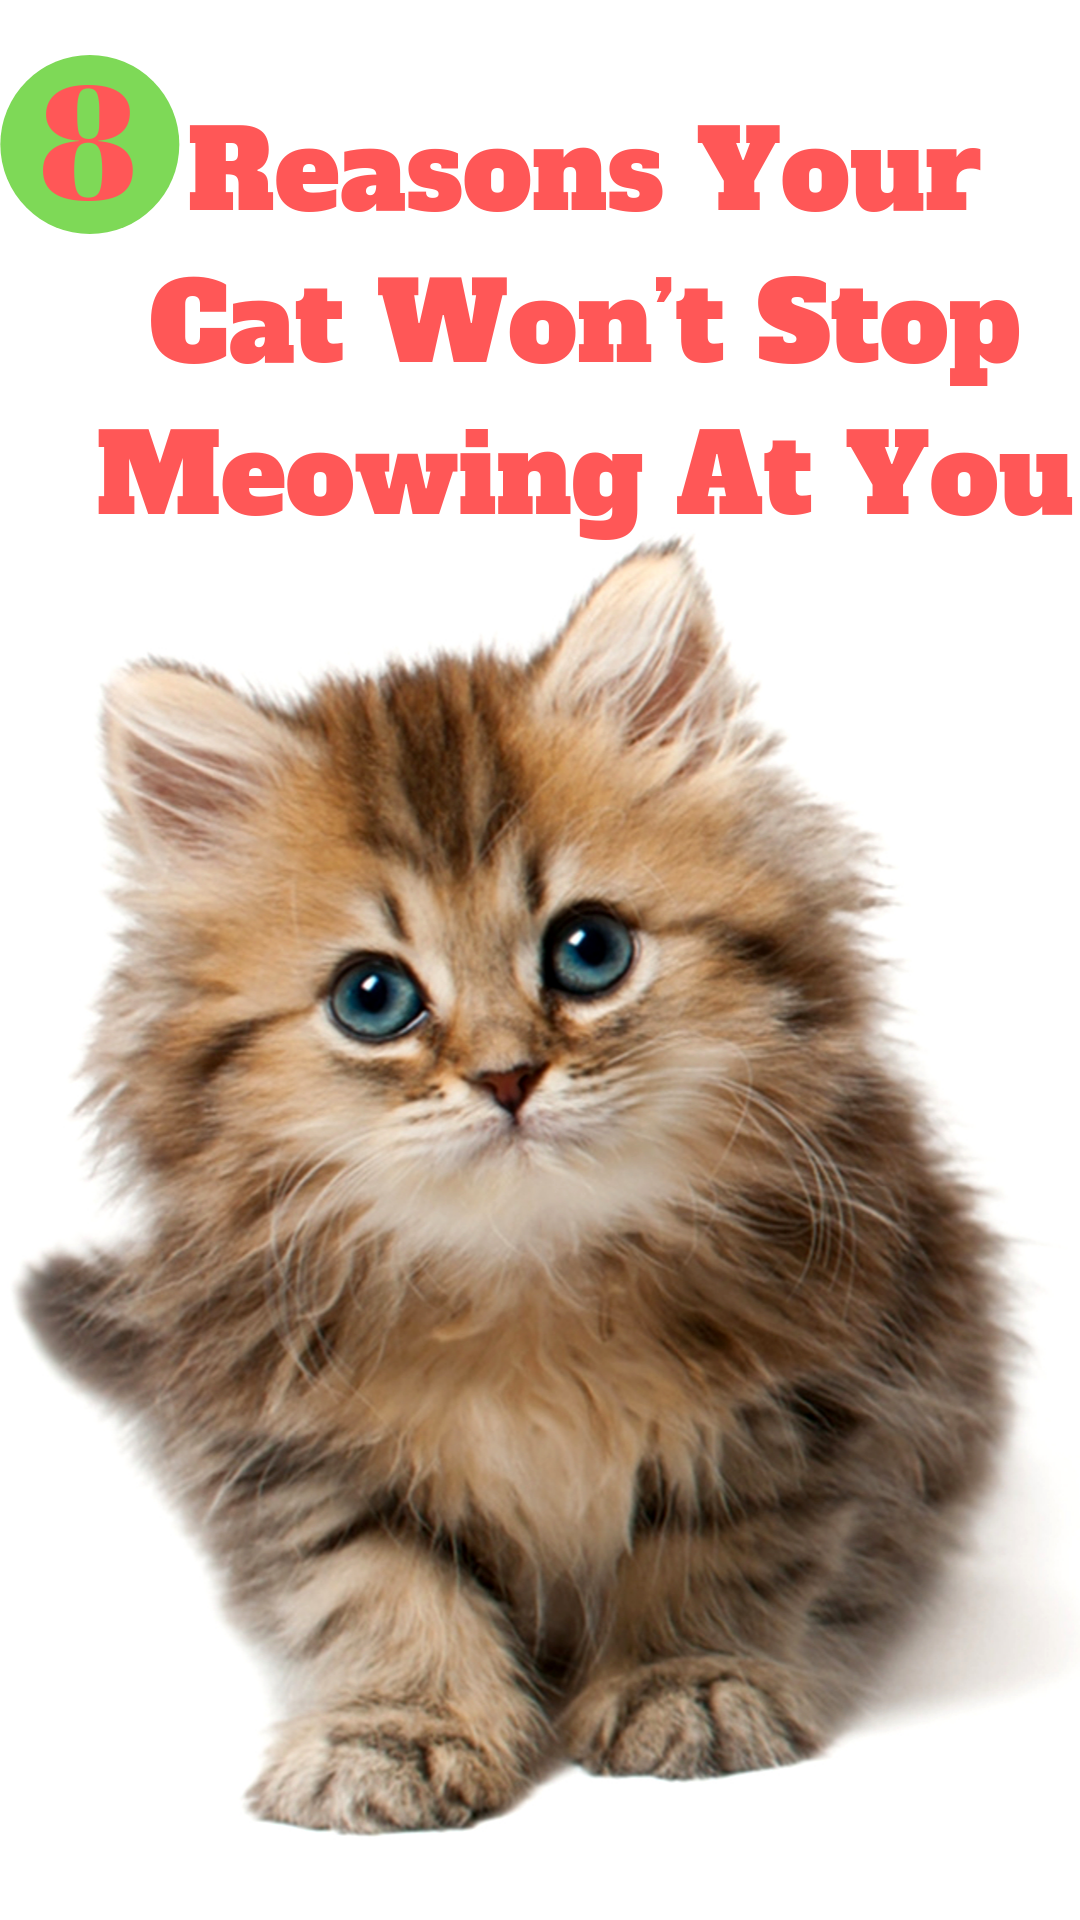 8 Reasons Your Cat Won't Stop Meowing At You in 2020